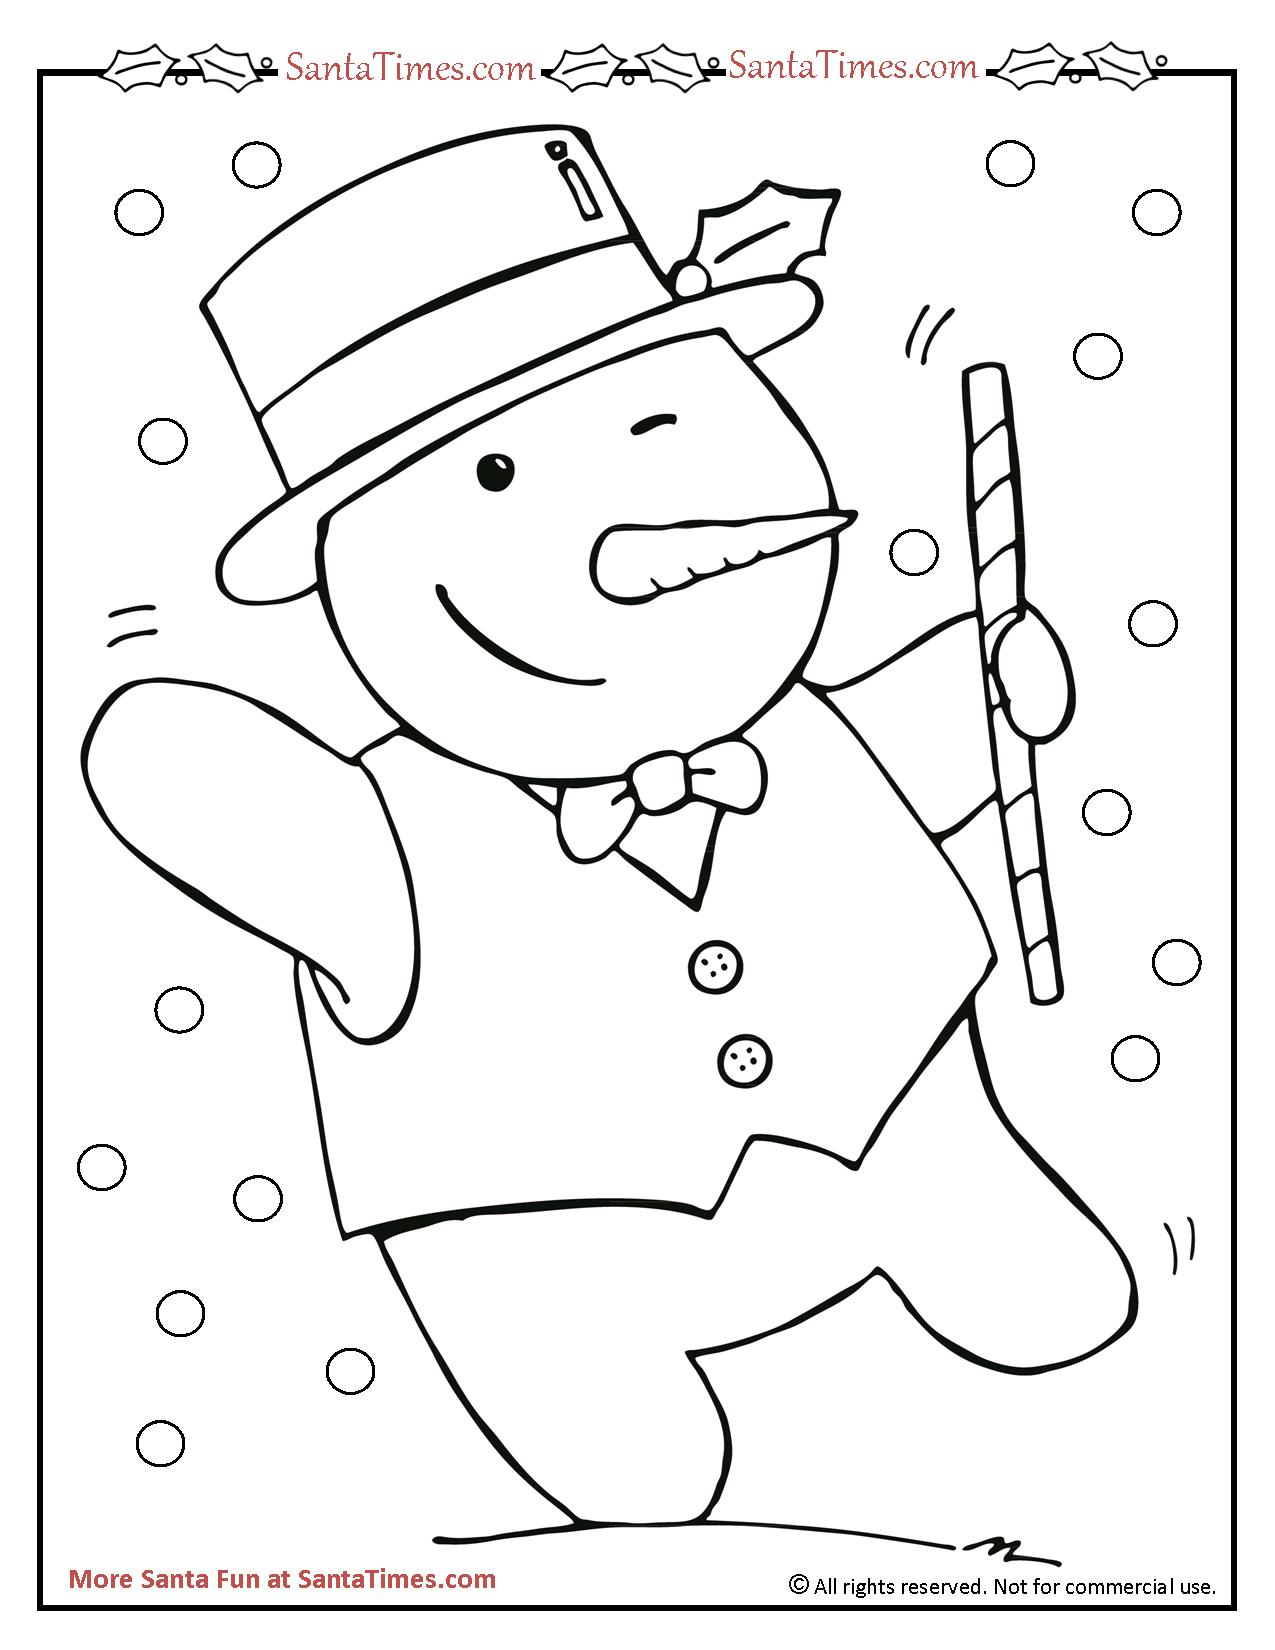 dancing snowman printable coloring page